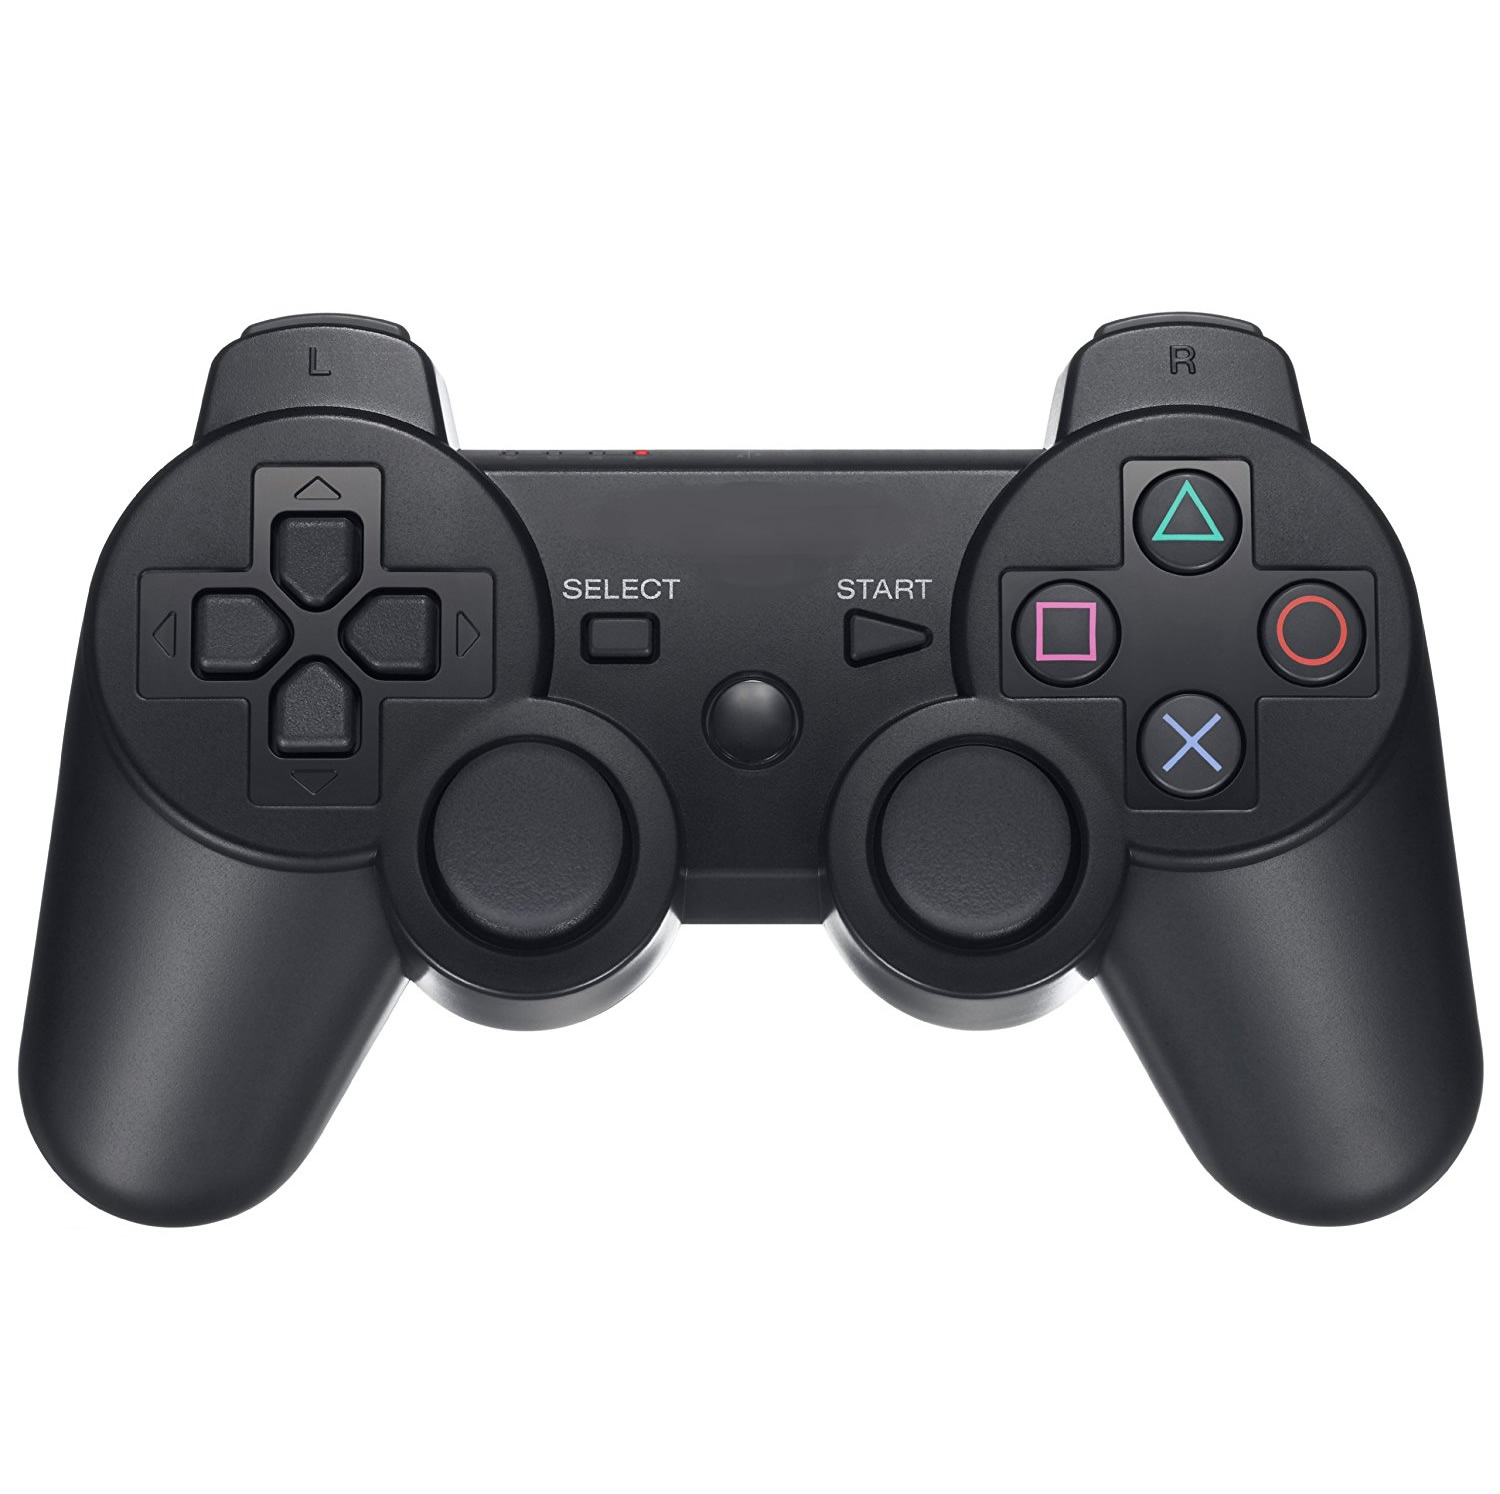 InSassy Wireless Bluetooth Game Controller (Black) for Sony PlayStation PS3